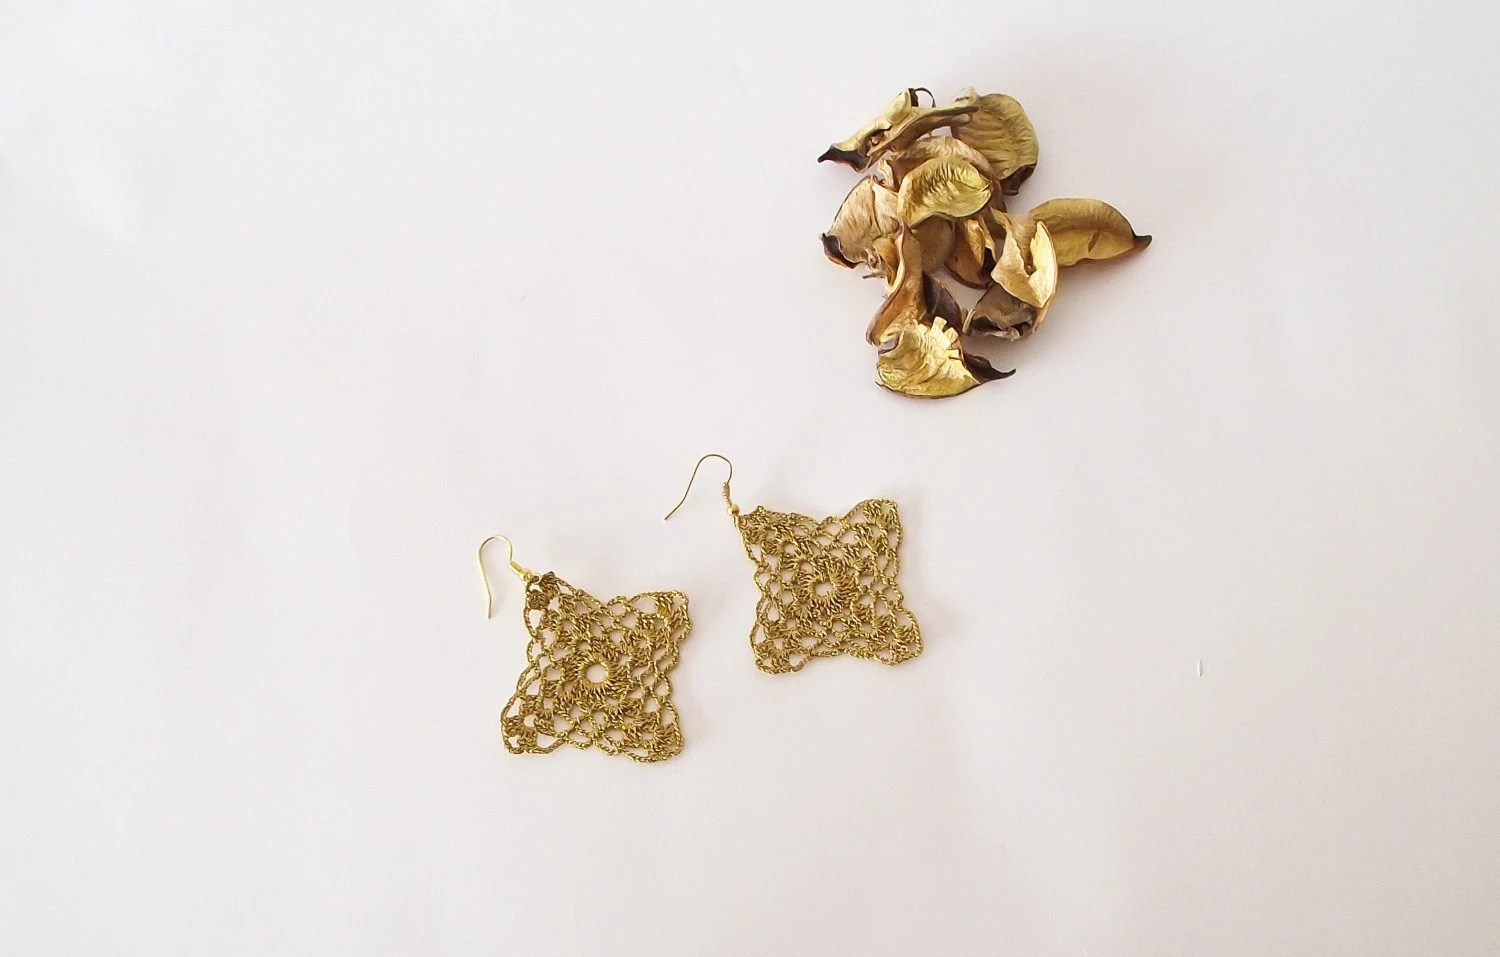 Golden Lace Earrings, Crochet Earrings, Dangle Earrings, Golden Crochet  ReddApple, Christmas Gift Ideas for Her - ReddApple